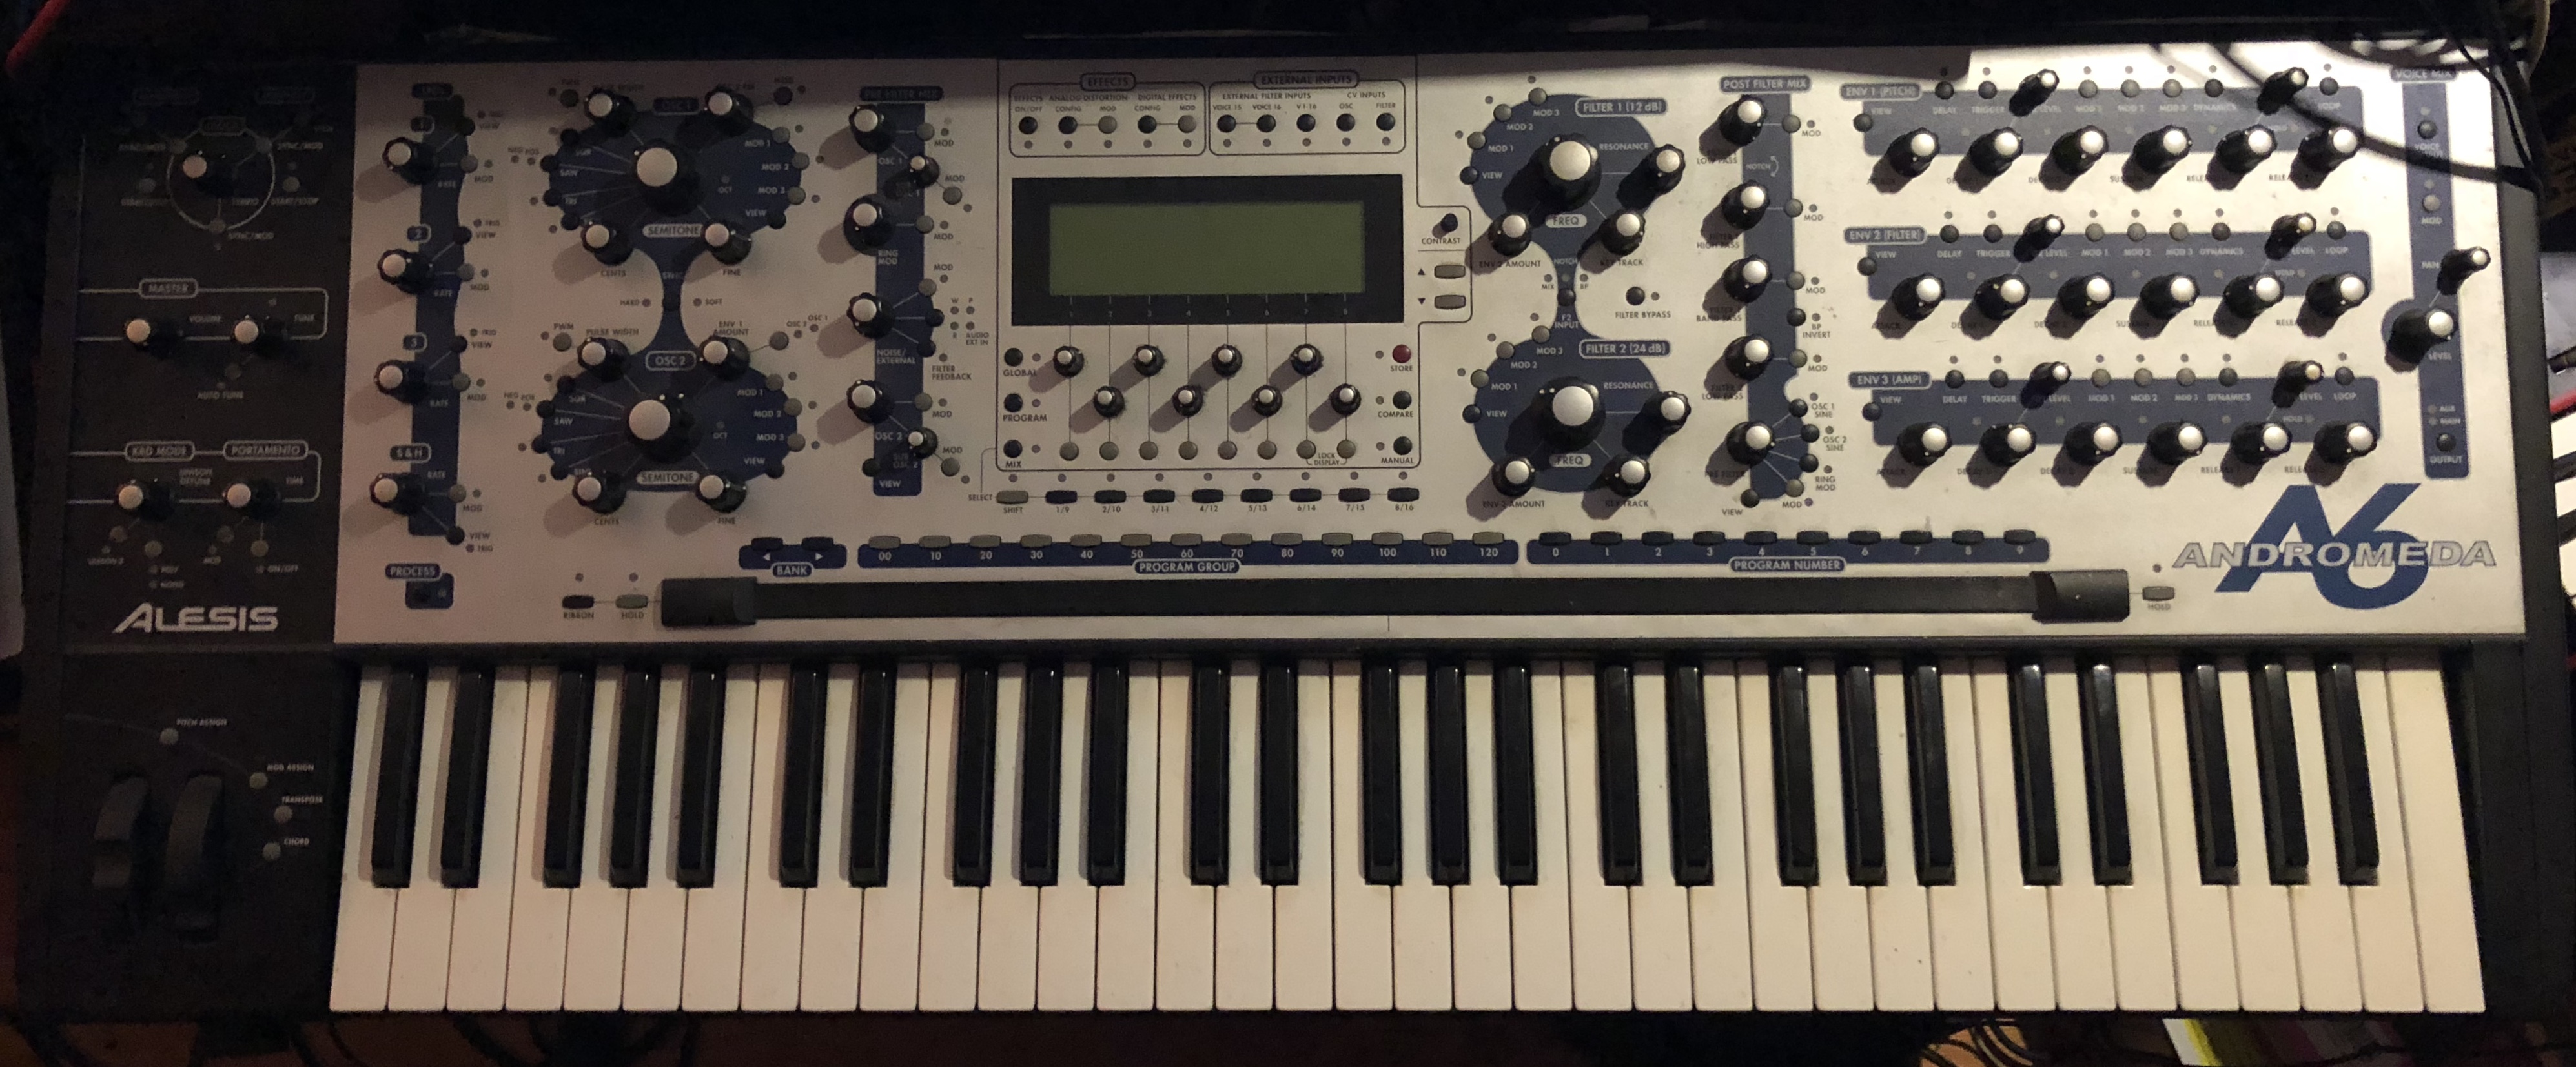 Alesis AndromedaA6 synthesizer